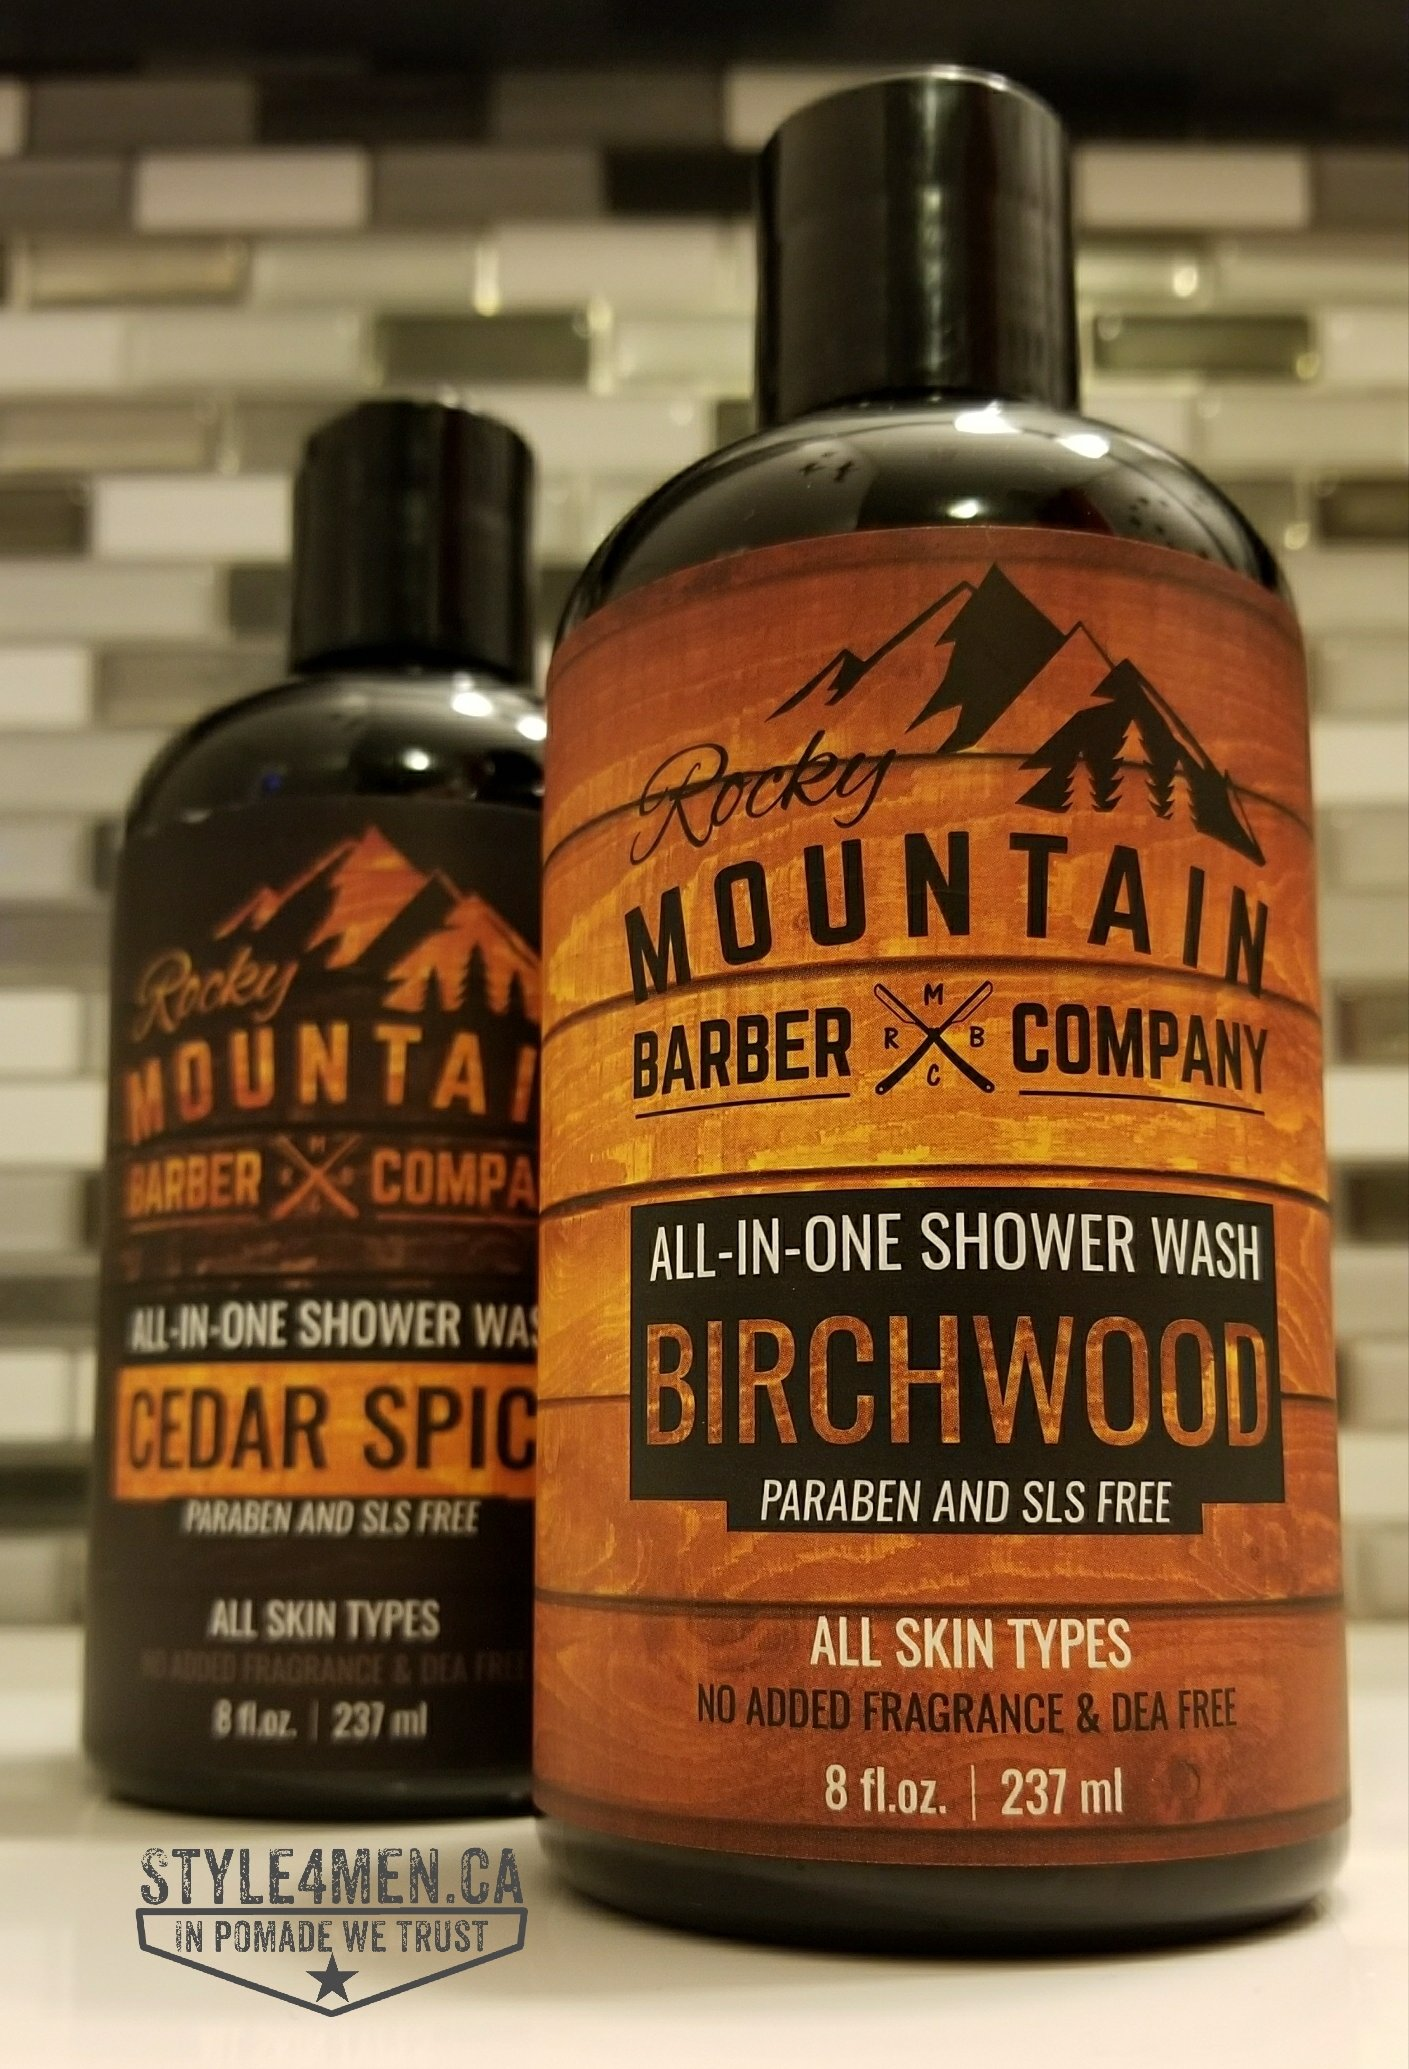 All-In-One Shower Wash from the Rocky Mountain Barber Co.